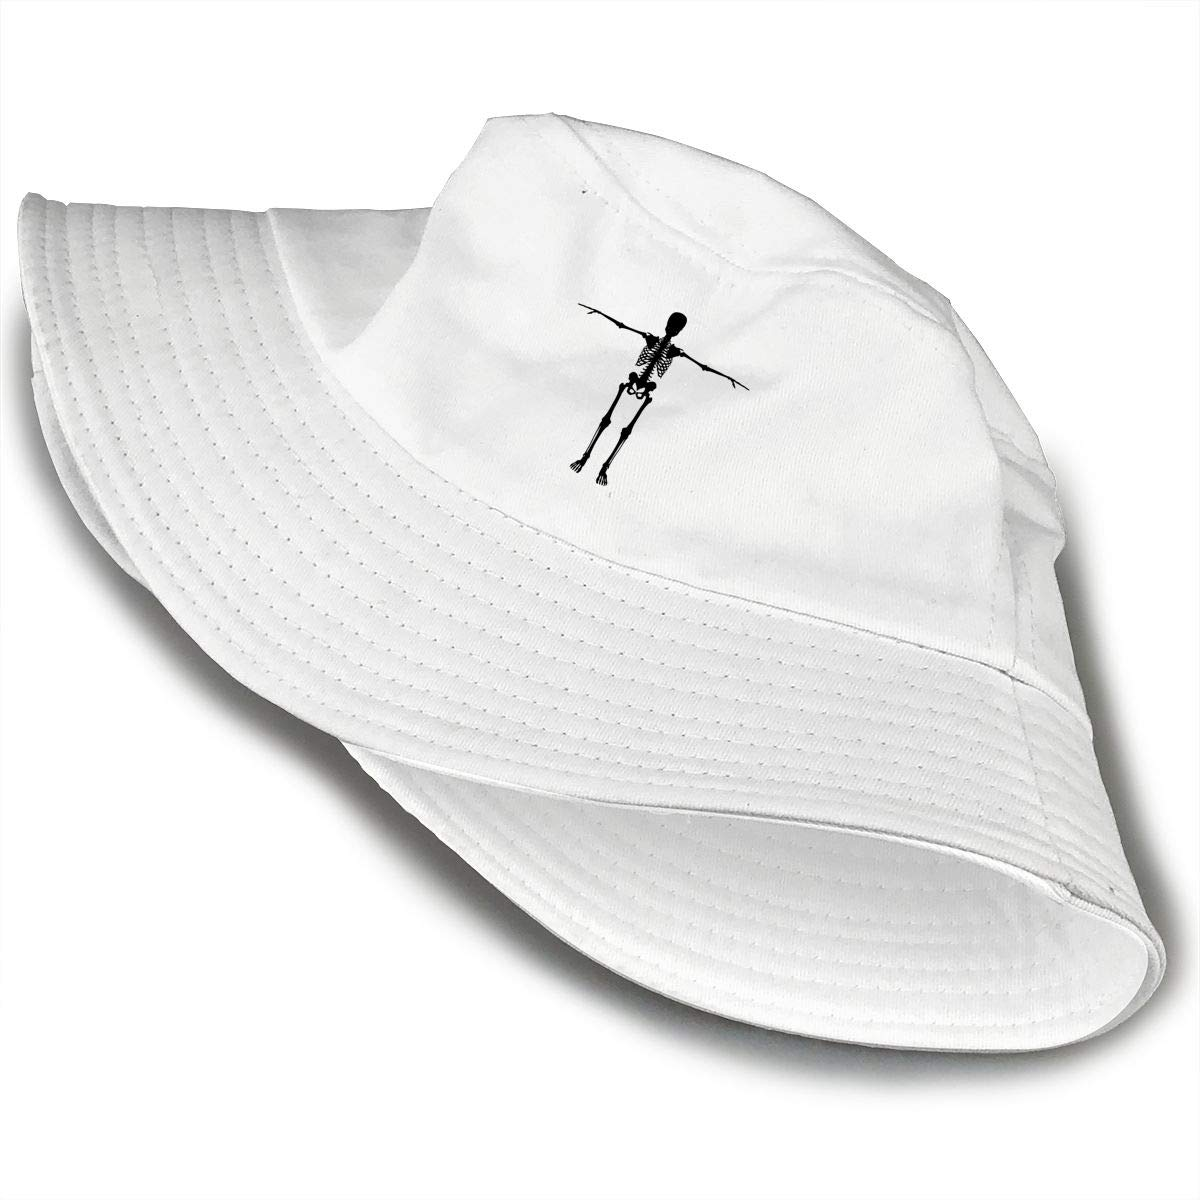 Skeleton with Arms Out Silhouette Unisex Cotton Packable White Travel Bucket Hat Fishing Cap